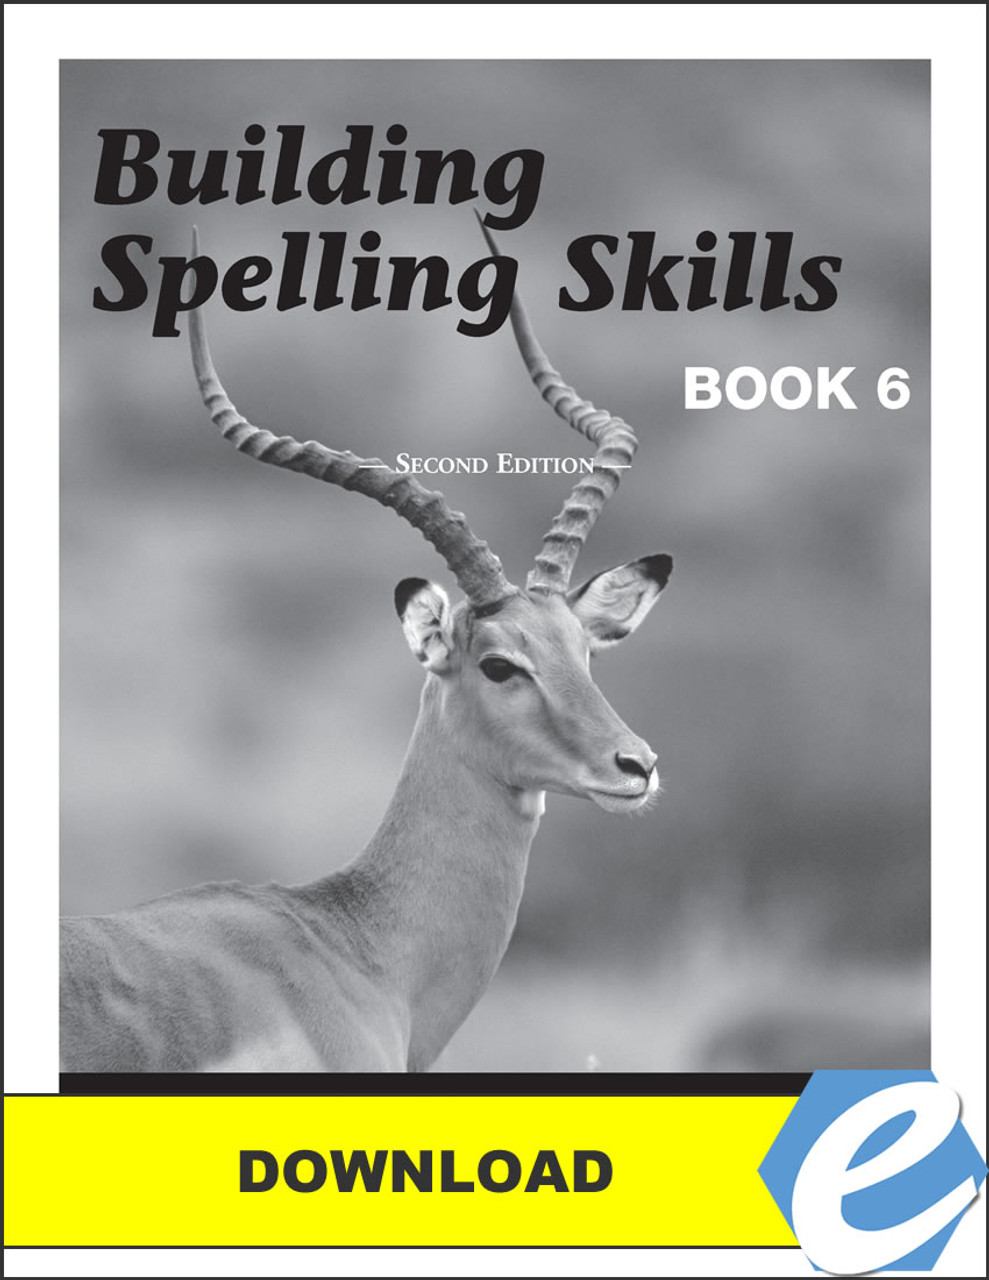 Building Spelling Skills: Book 6, 2nd edition - Answer Key - PDF Download